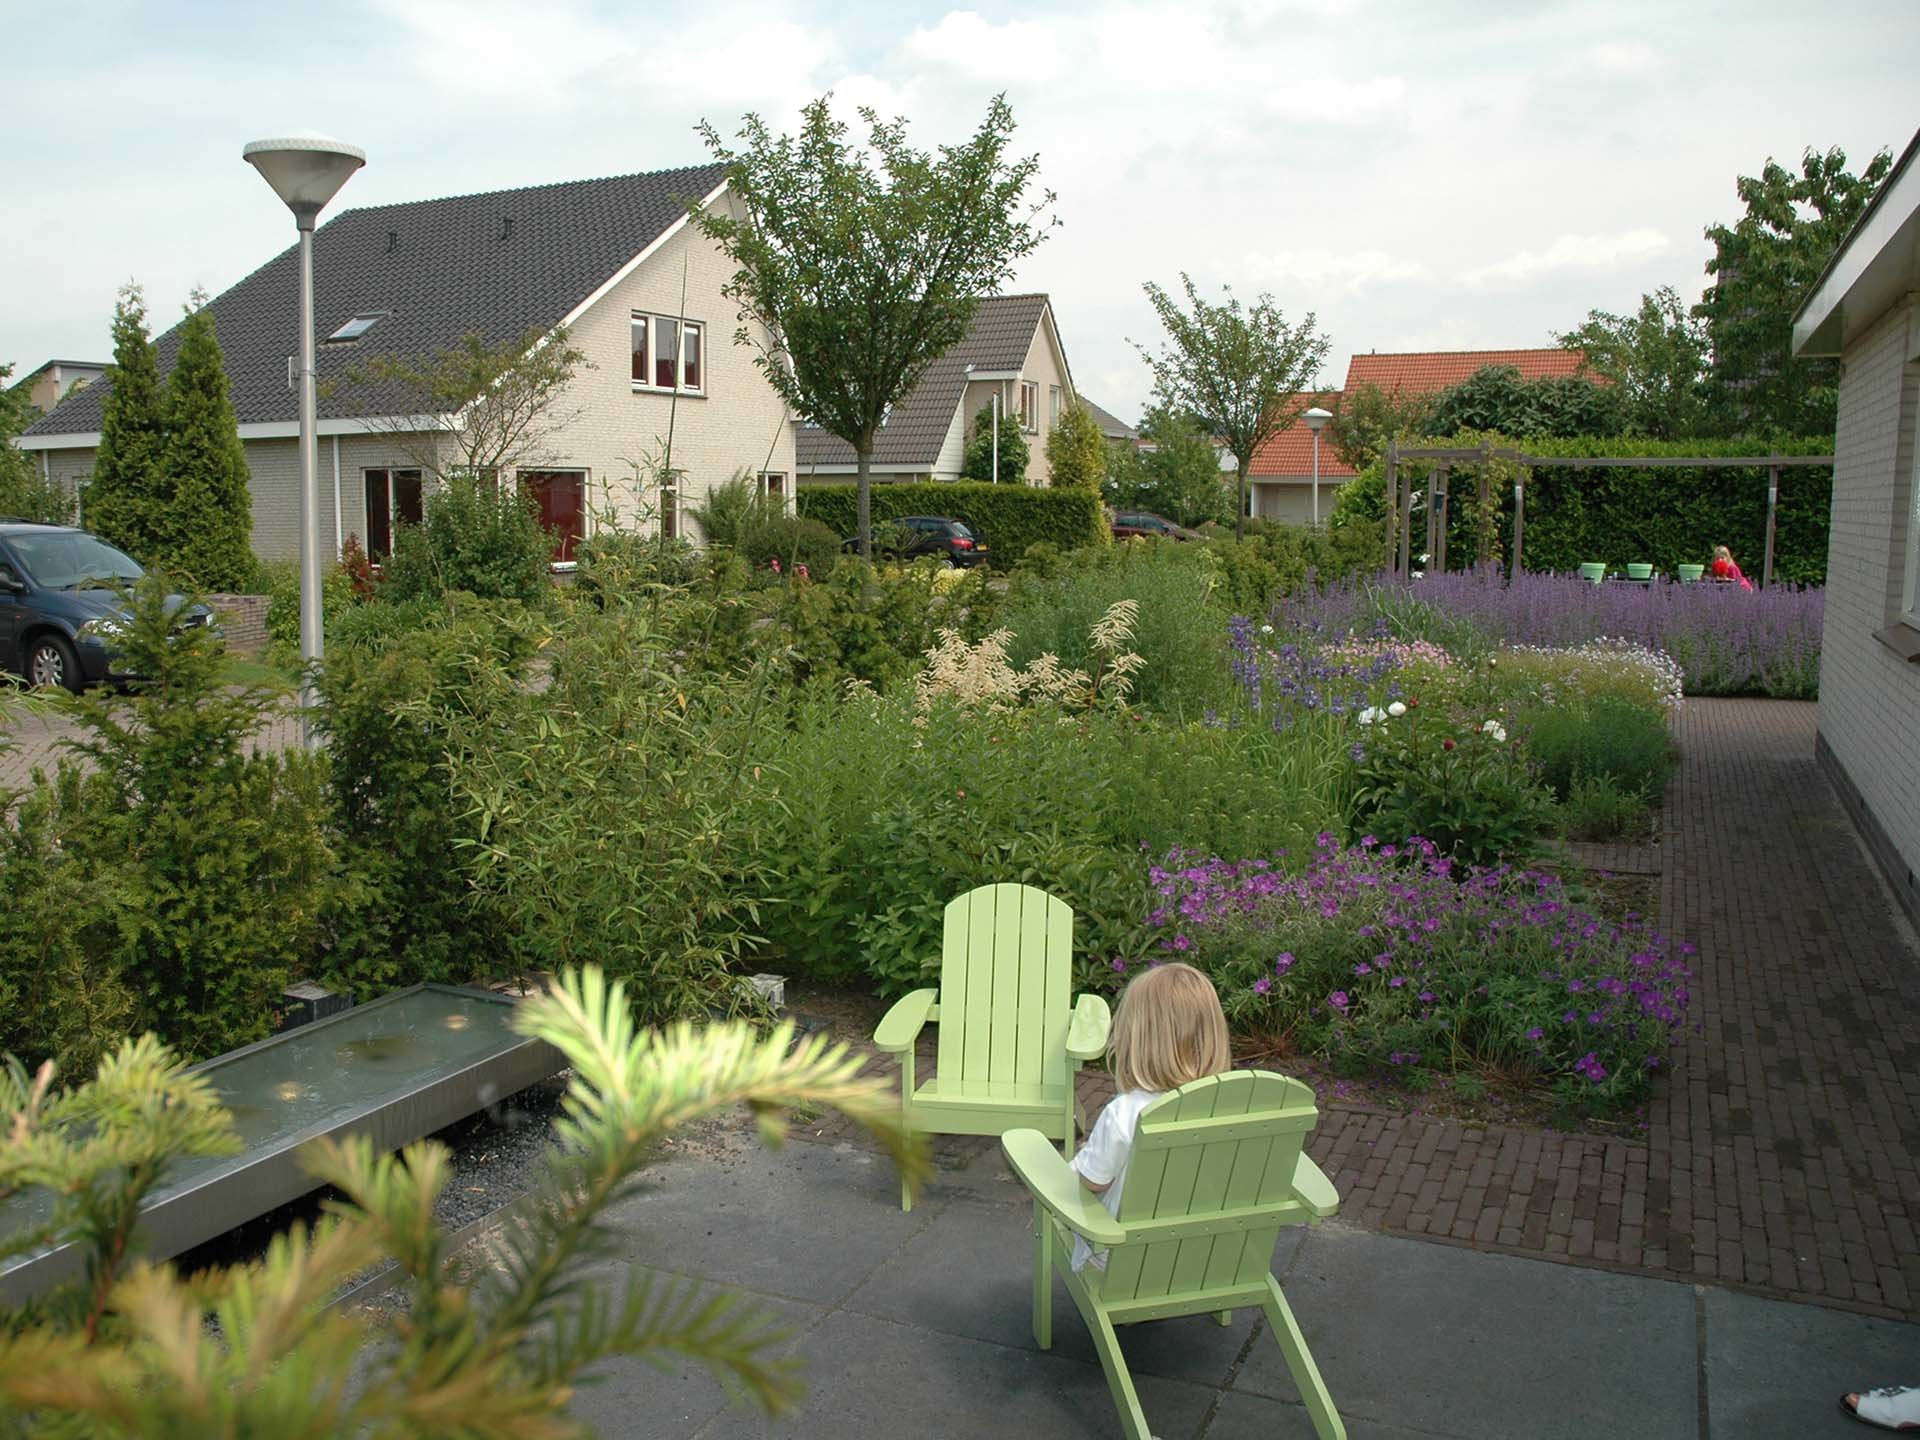 02 Tuin in Zwolle